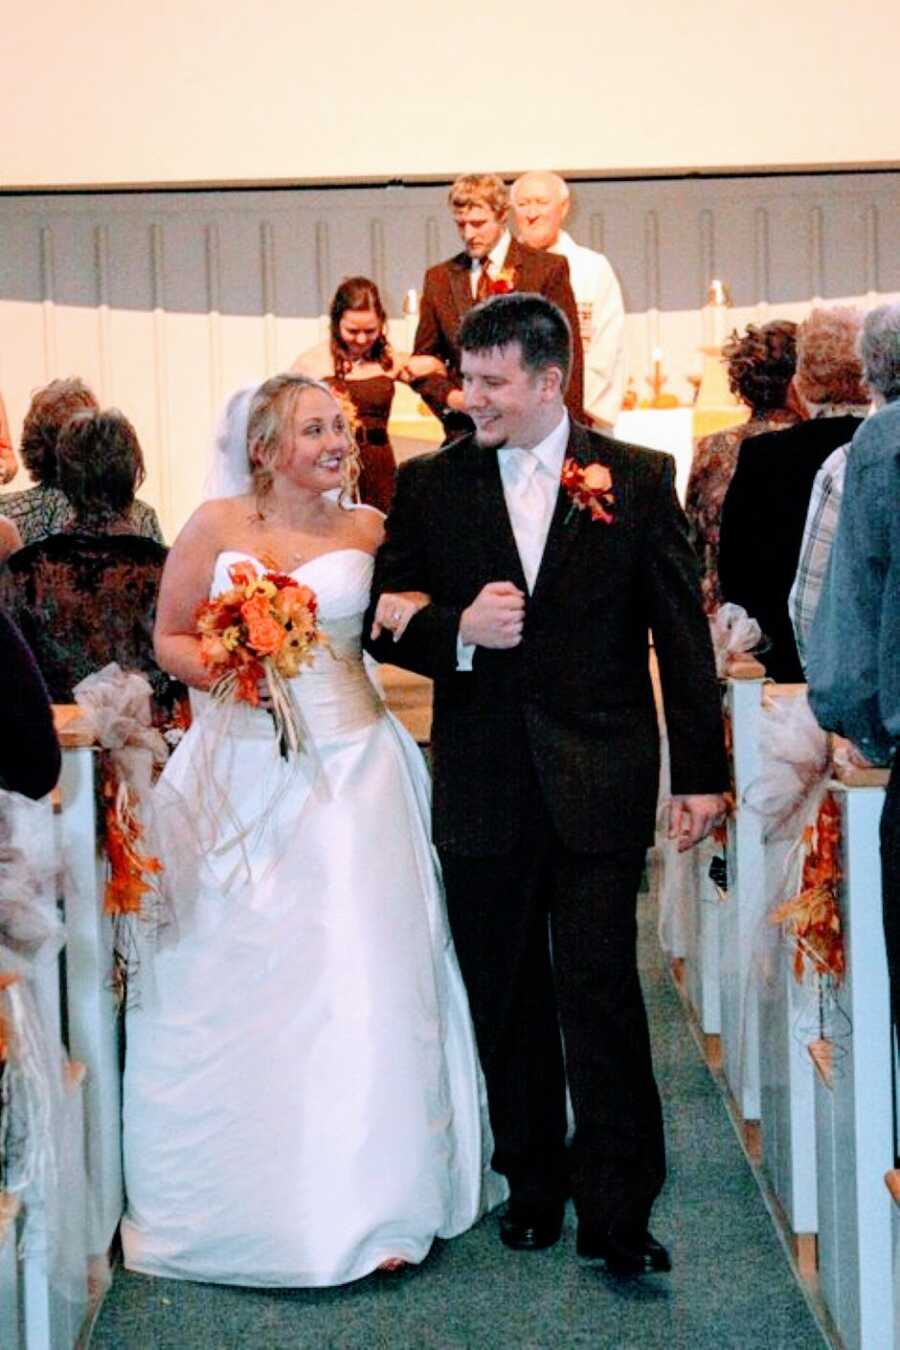 Young couple smile at each other while walking down the aisle at their wedding reception